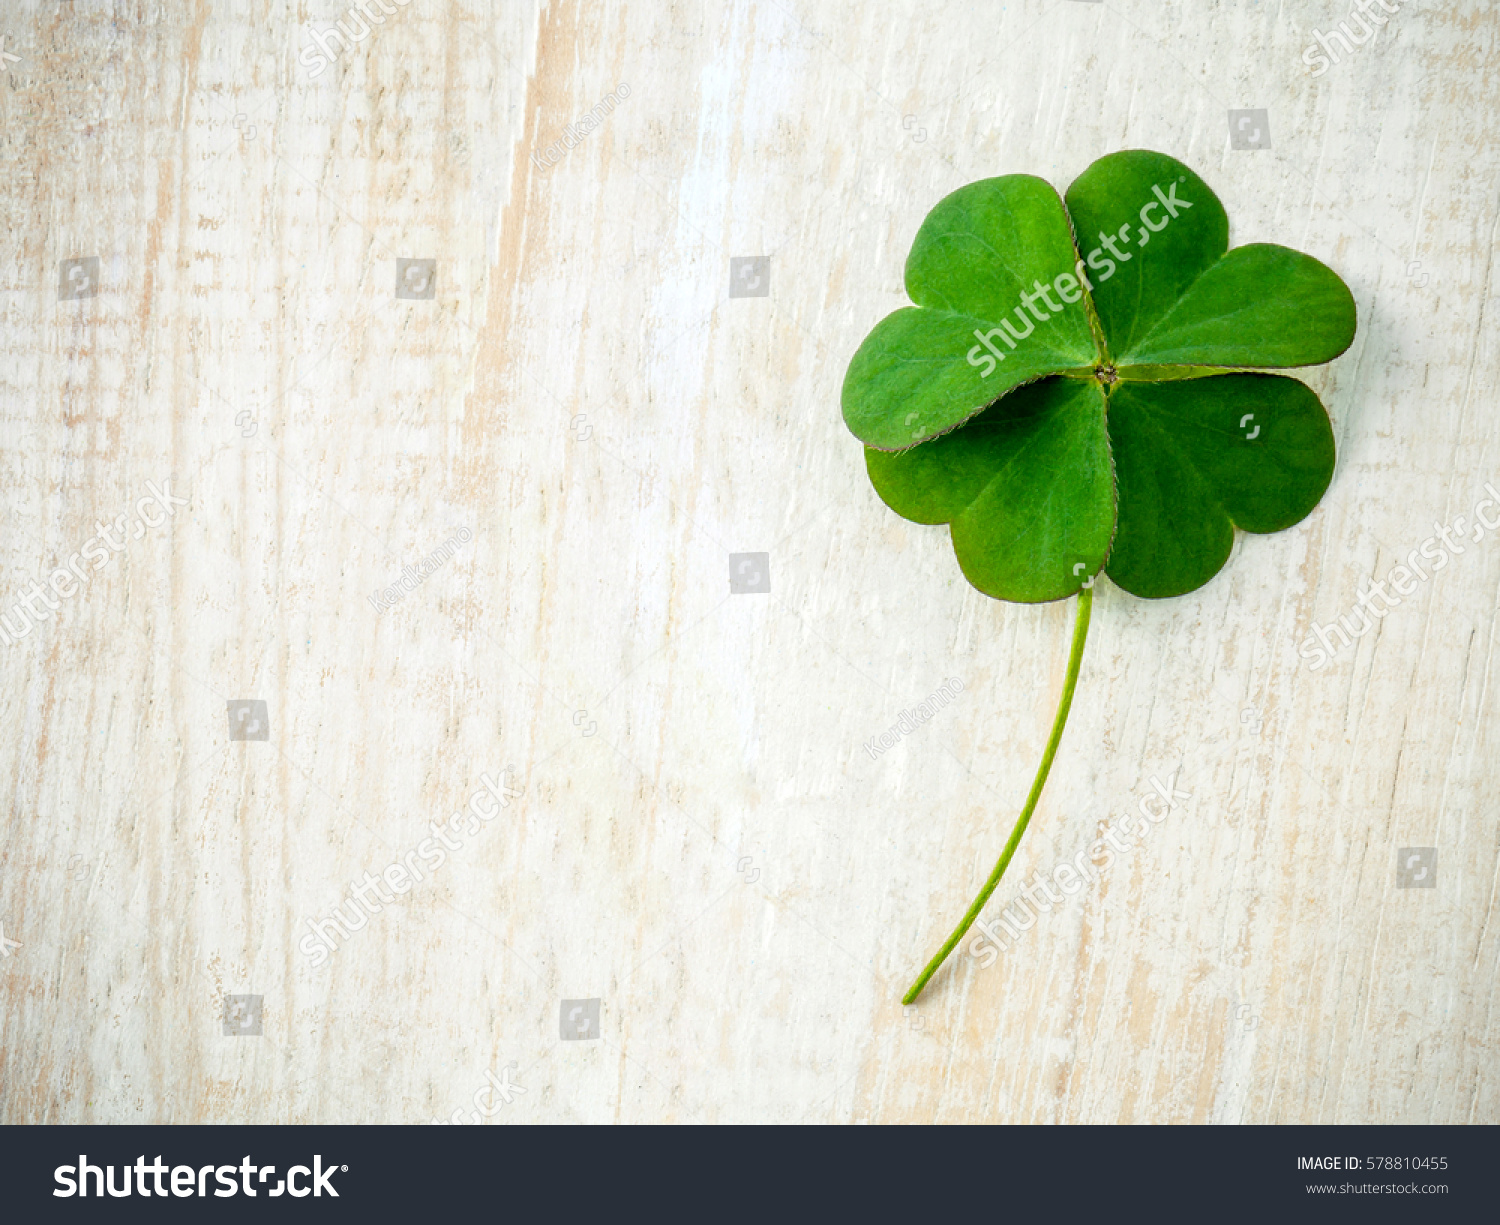 Clovers leaves on shabby wooden background. The symbolic of Four Leaf Clover the first is for faith, the second is for hope, the third is for love, and the fourth is for luck. #578810455